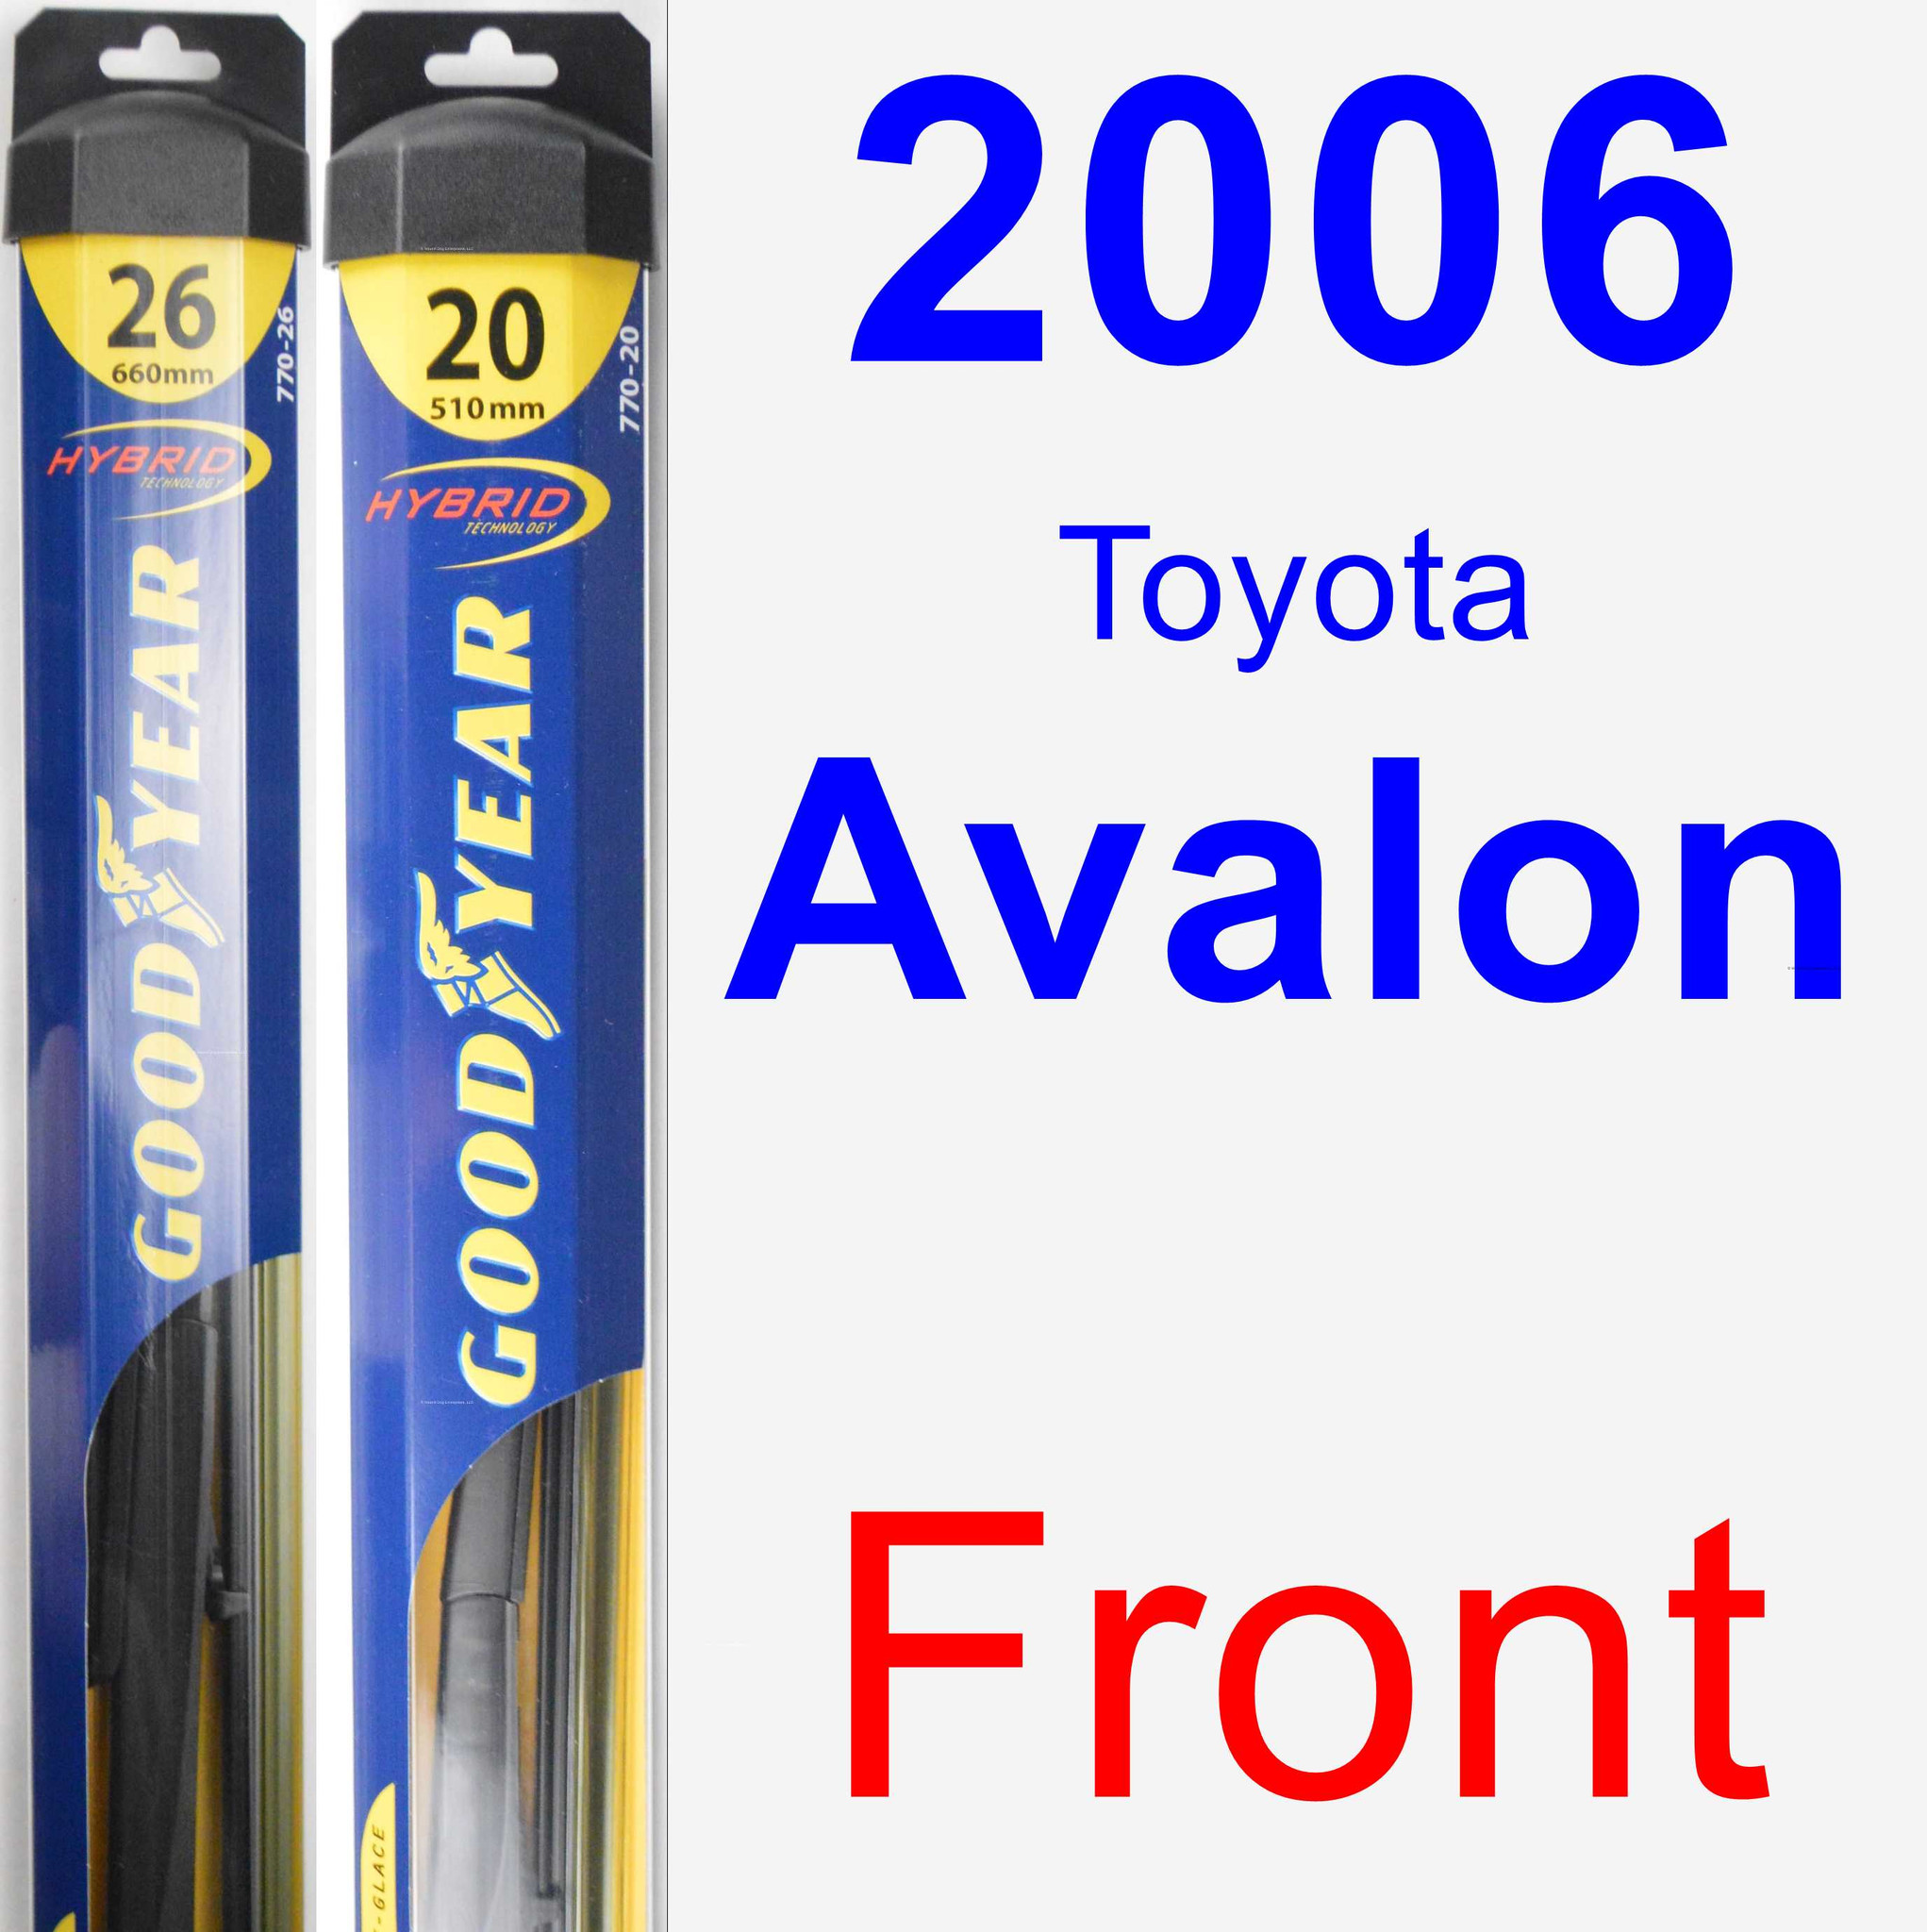 2006 Toyota Avalon Exterior: 2006 Toyota Avalon Wiper Blade Set/Kit (Front) (2 Blades